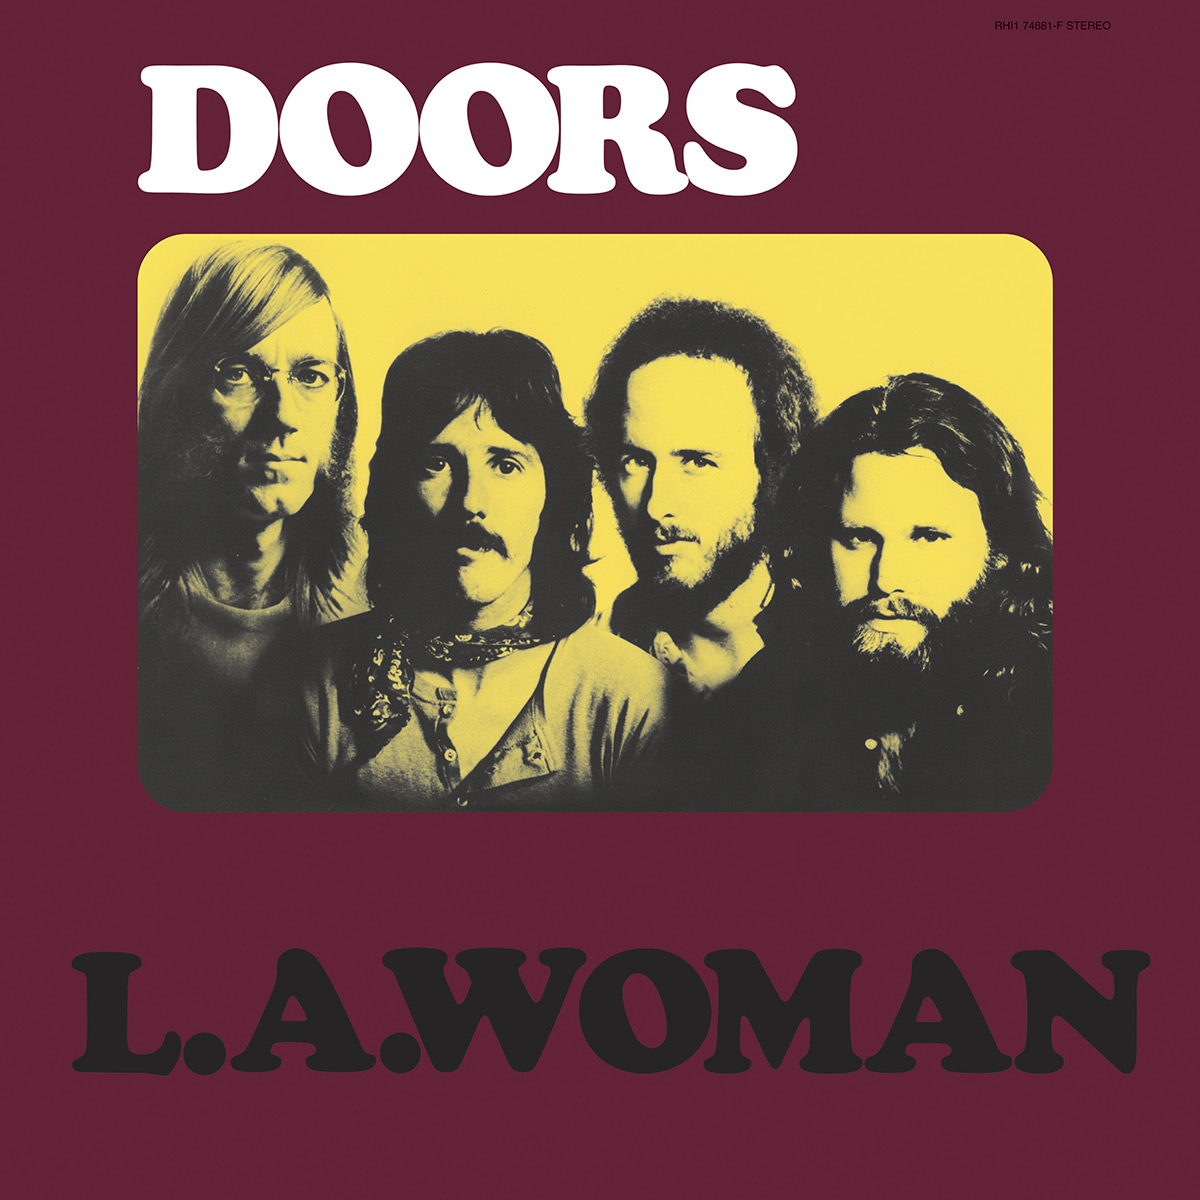 The Doors - L.A. Woman - 1971